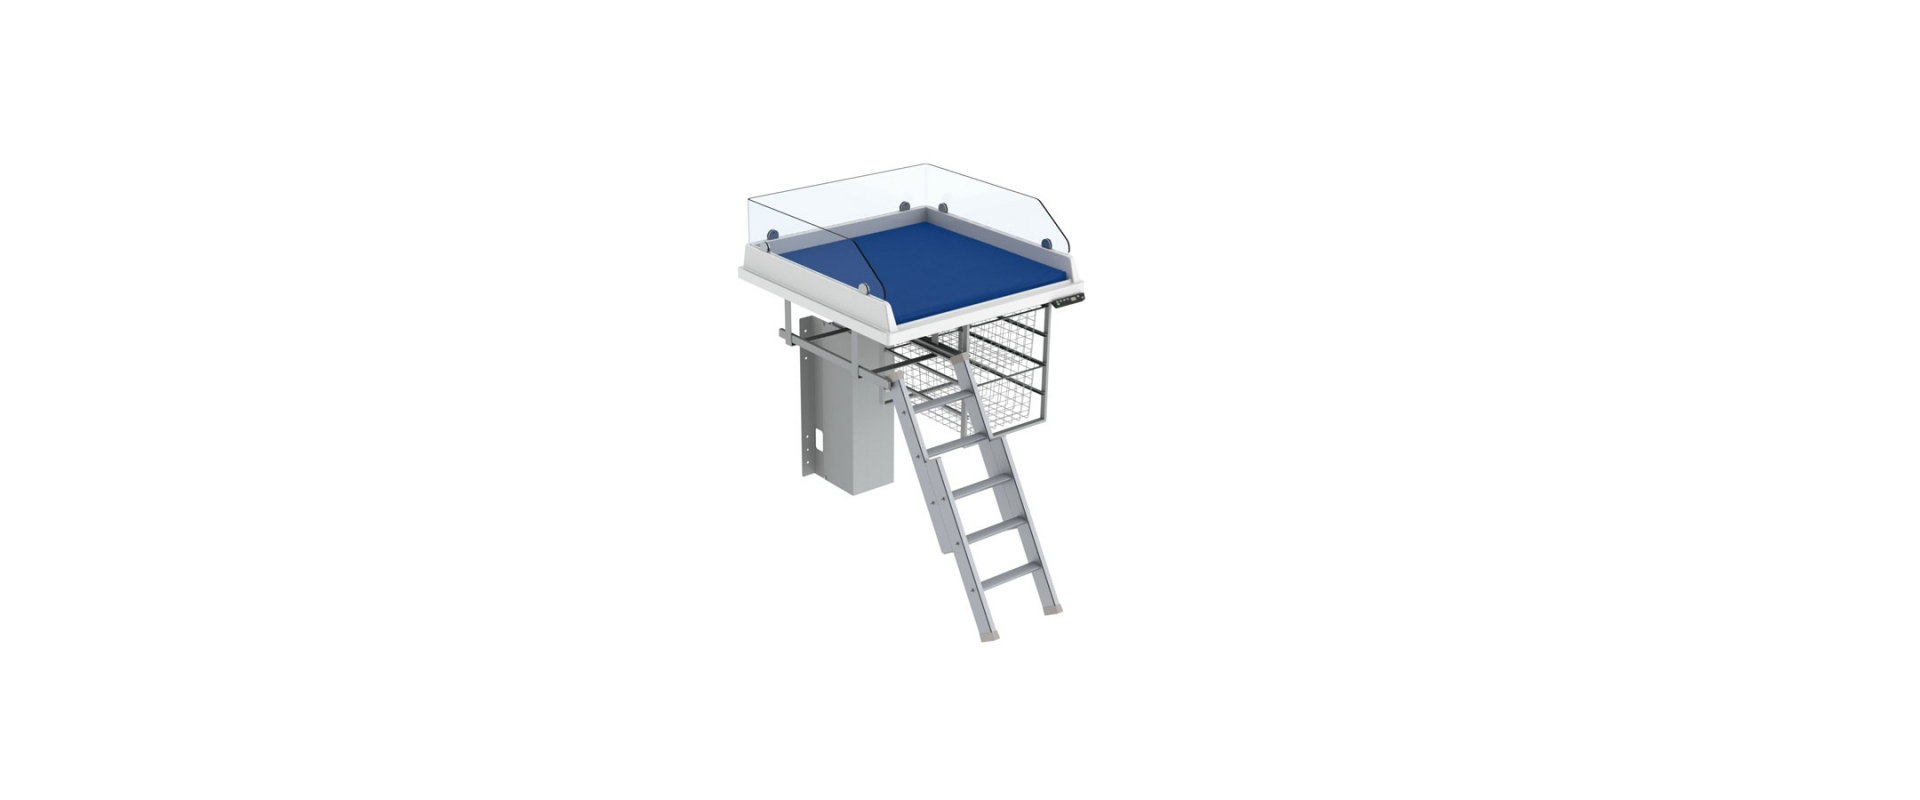 <b>Baby changing table 335 - Border height 20.0 cm</b>